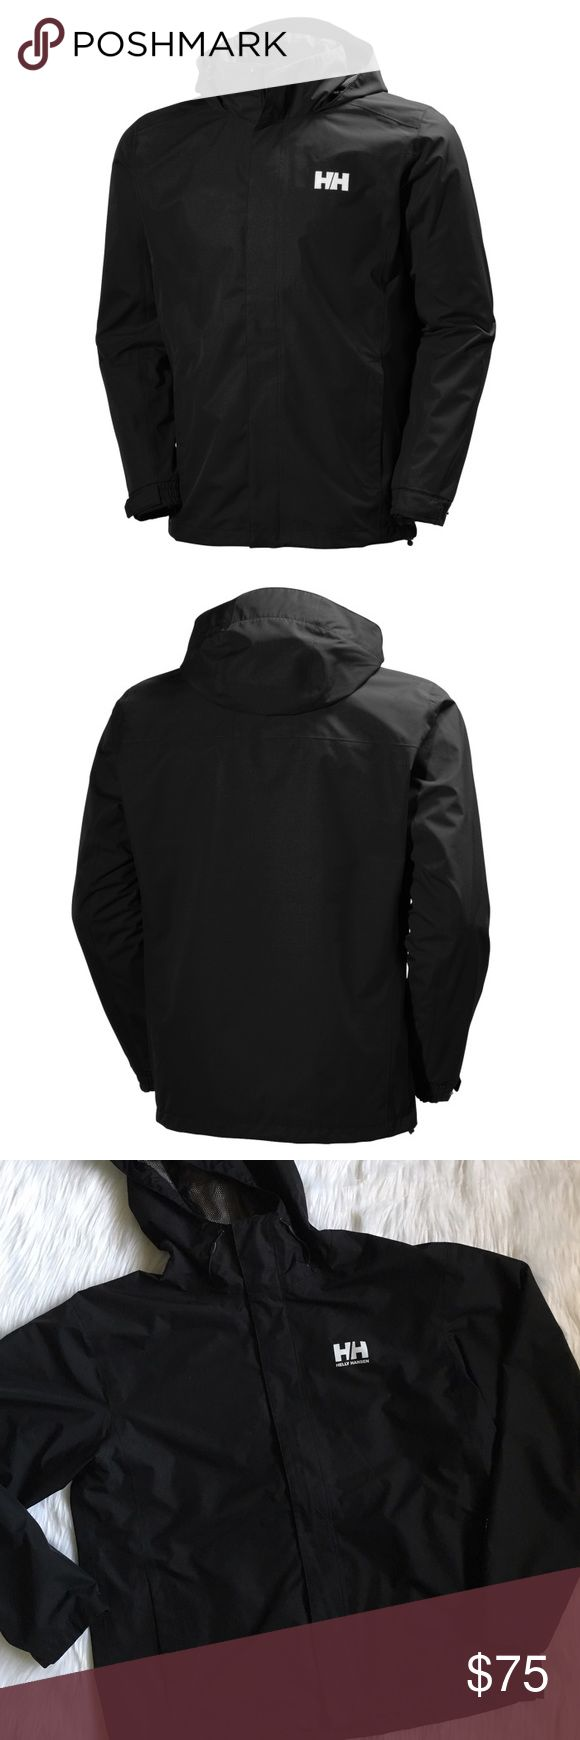 """Helly Hansen Dubliner Black Waterproof Rain Coat great-fitting, versatile Helly Tech® DUBLNER jacket for men. in the color """"990 black"""". waterproof, breathable and windproof with fully sealed seams to protect you against the elements. it's quick-dry, lightweight lining adds comfort in both warm and cold weather. perfect rainwear for wet weather. Helly Tech® Protection. price is FIRM. *CONTINUES IN COMMENTS* Helly Hansen Jackets & Coats Raincoats"""